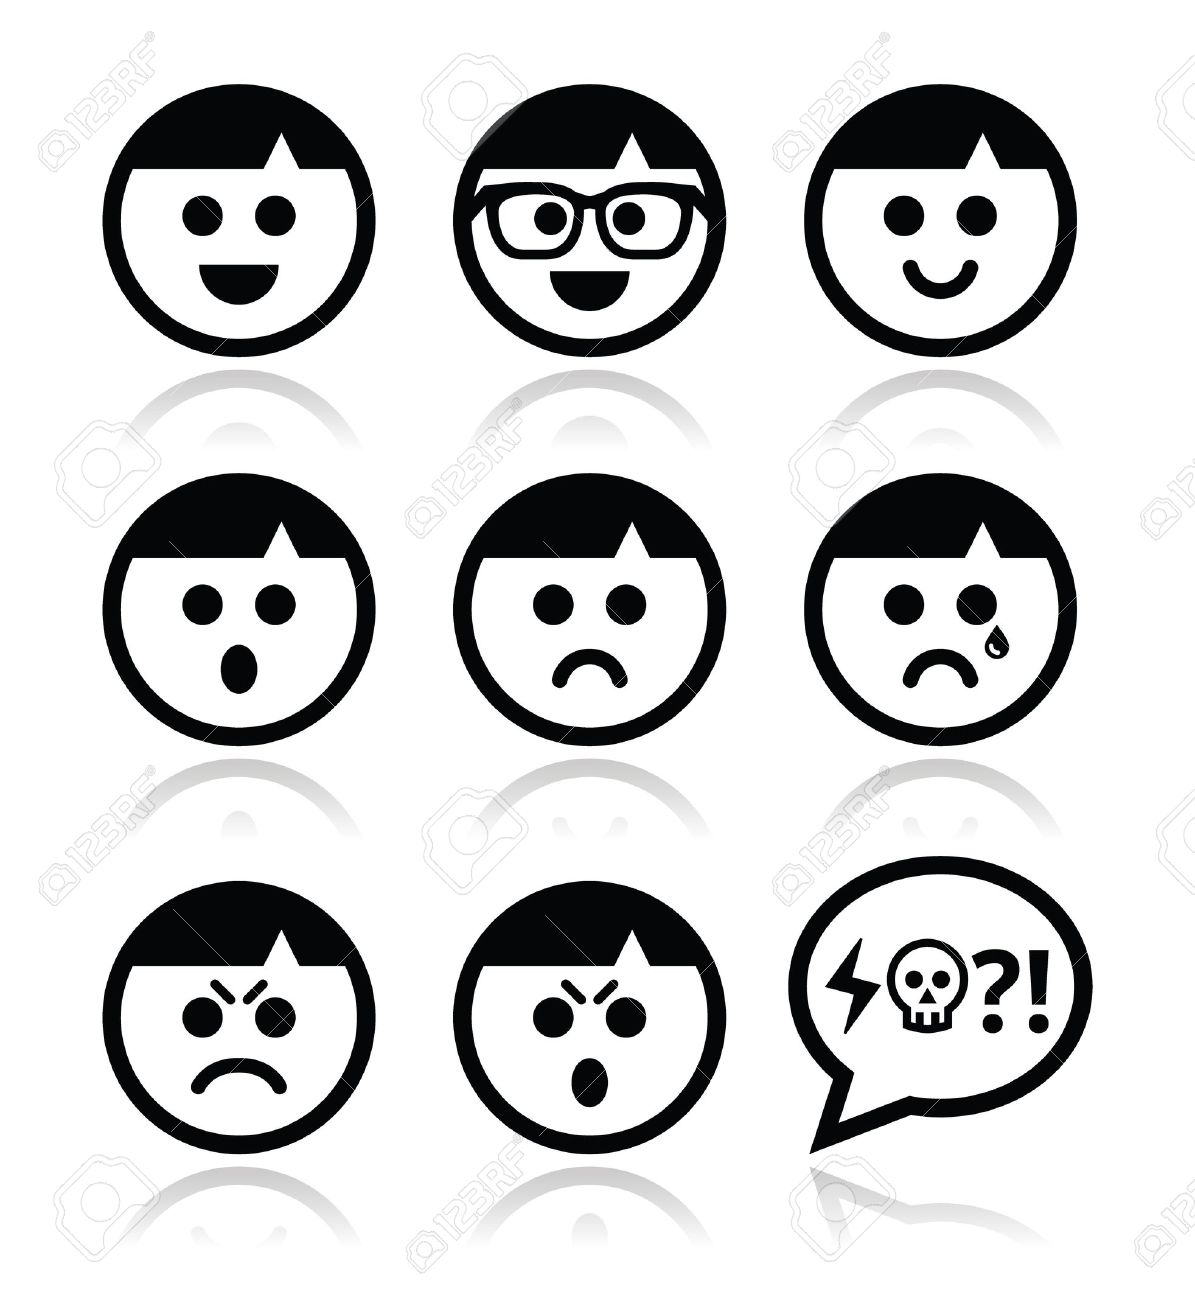 smiley faces avatar vector icons set royalty free cliparts vectors rh 123rf com smiley face vector free download smiley face vector free